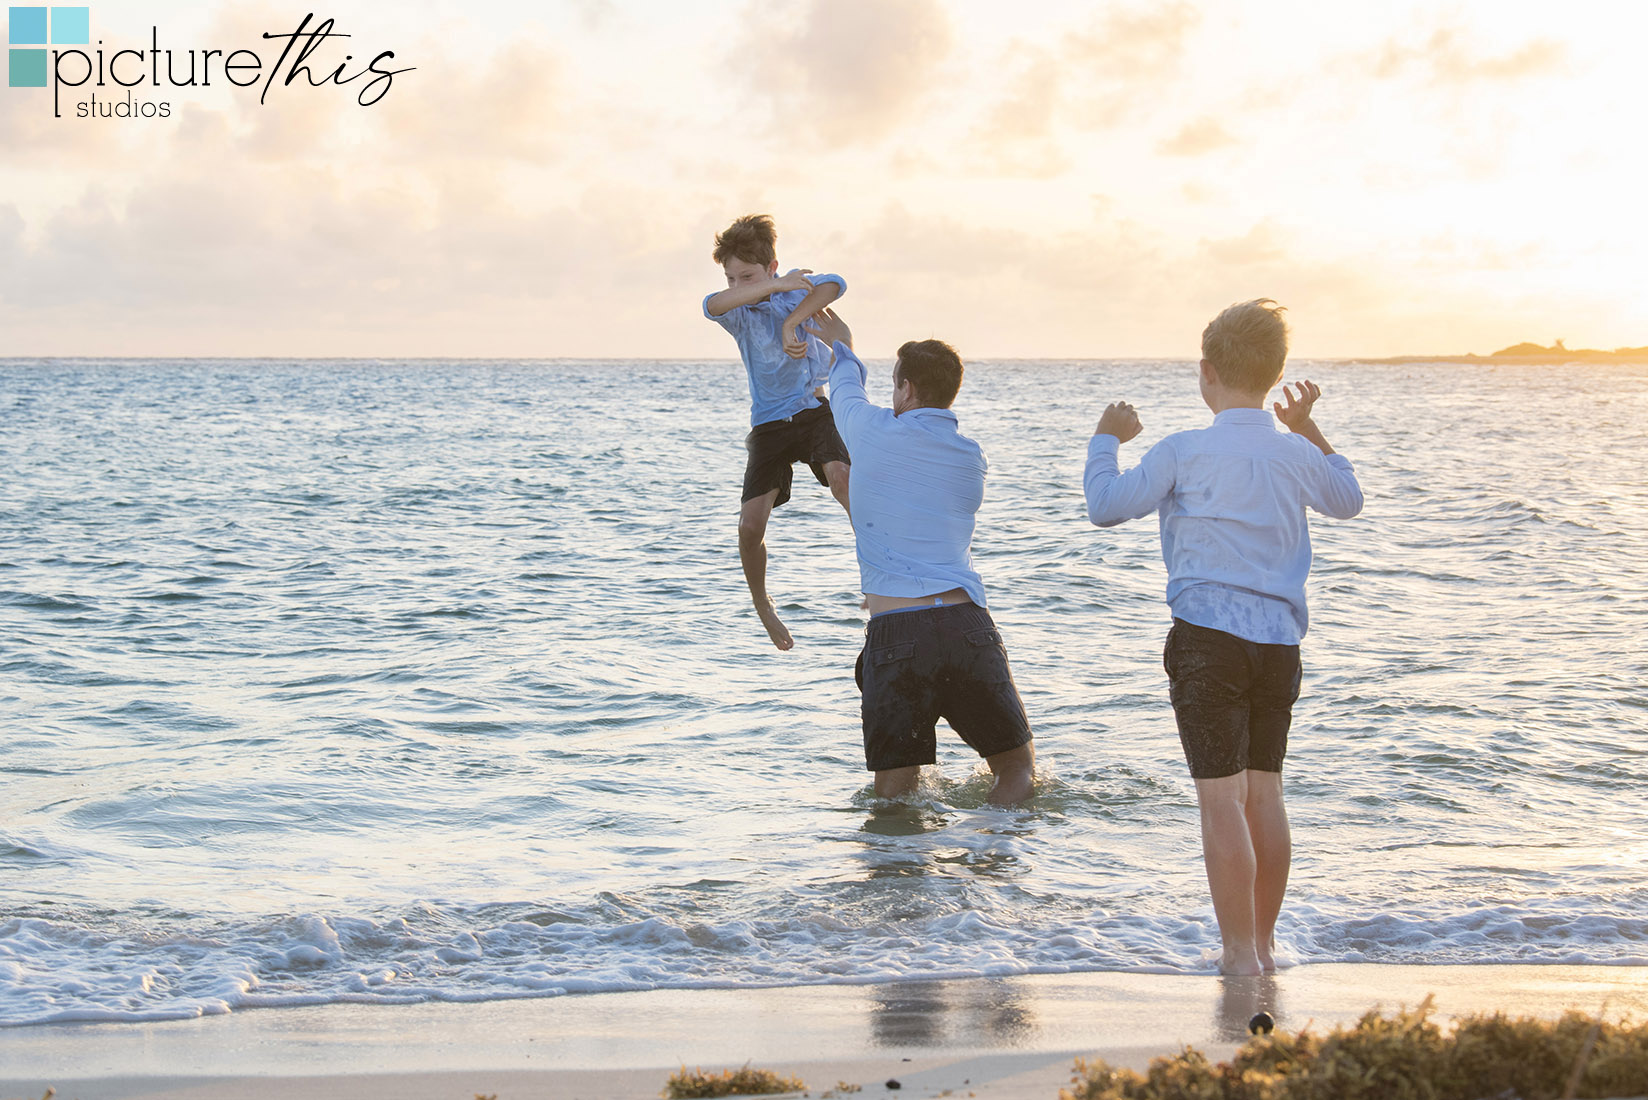 Happy Fathers Day 2021 from all of us Cayman Islands Photographers at Picture This Studios!